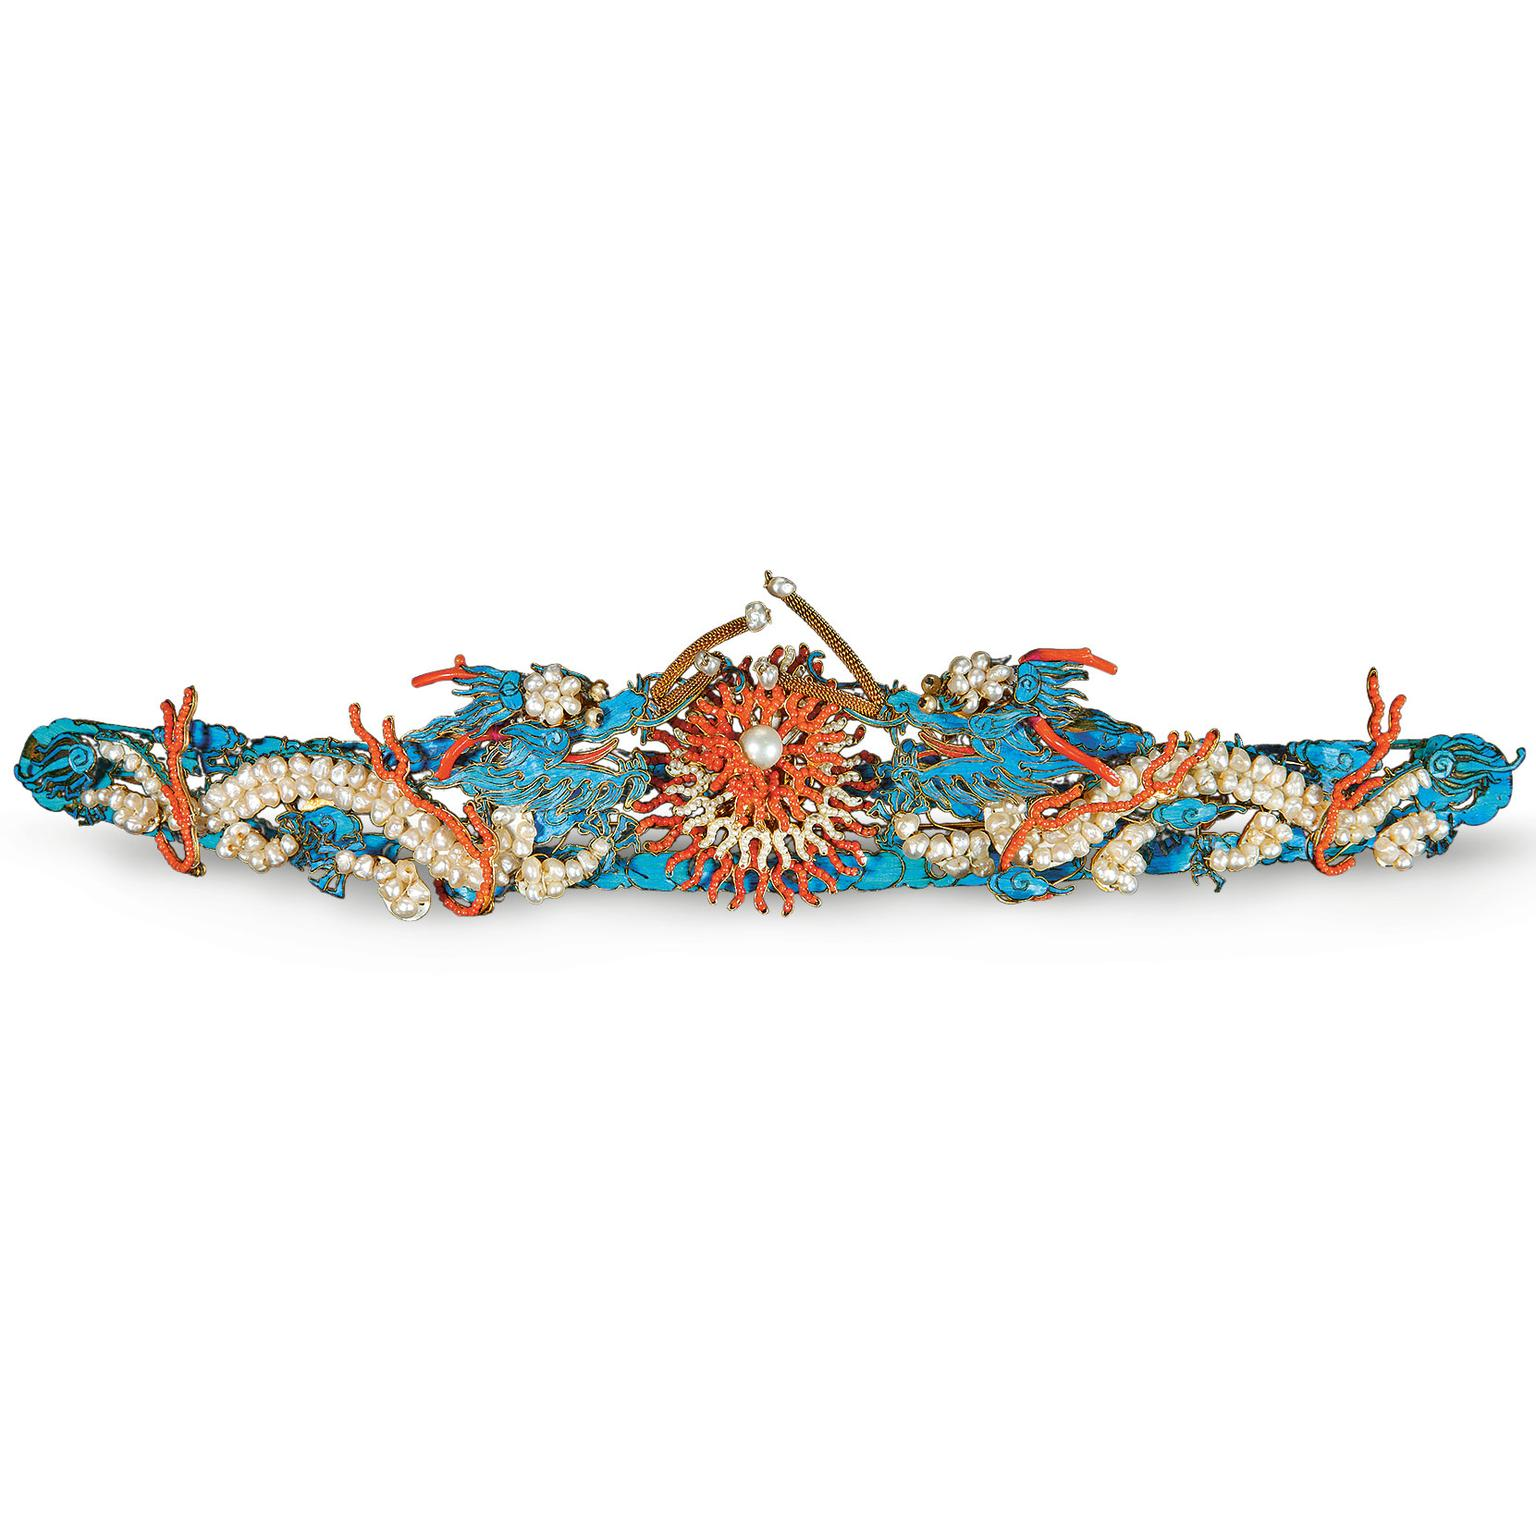 Hair pin with dragon motifs from the Qing Dynasty